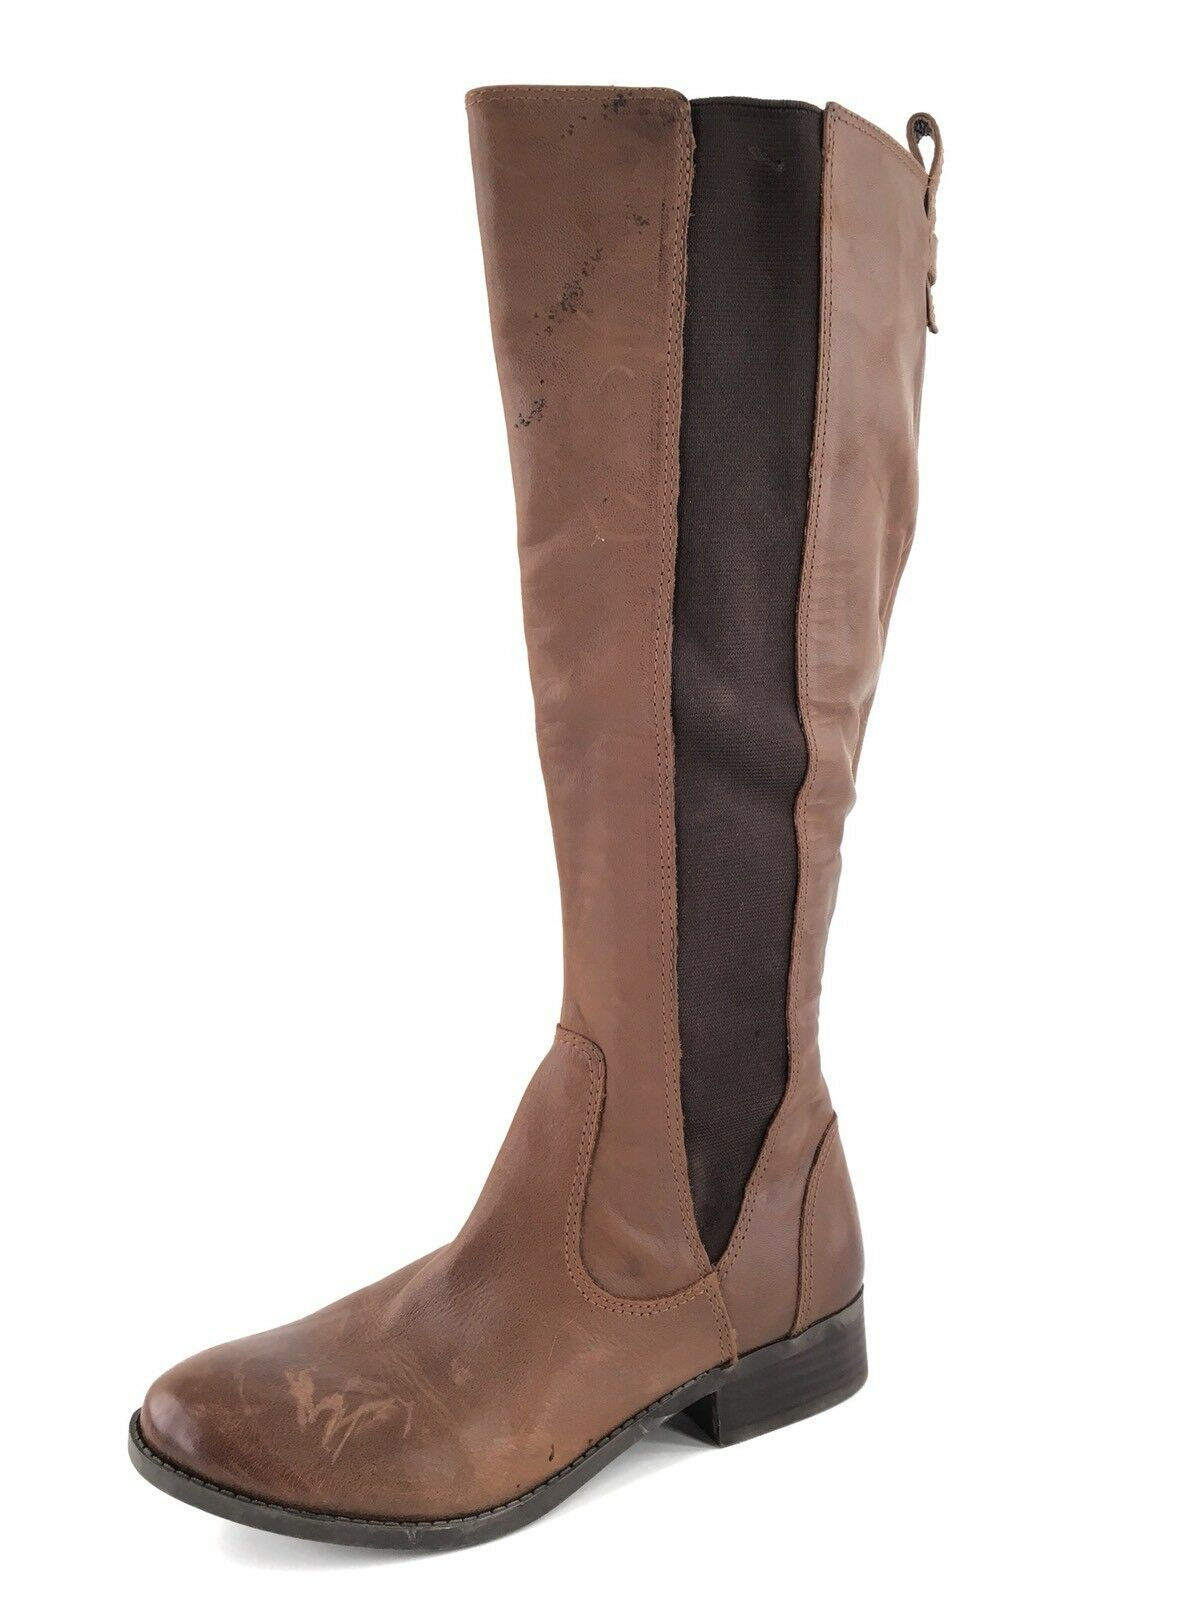 Jessica Simpson Radforde 2 Brown Leather Stretch Riding Boots Womens Size 7 M